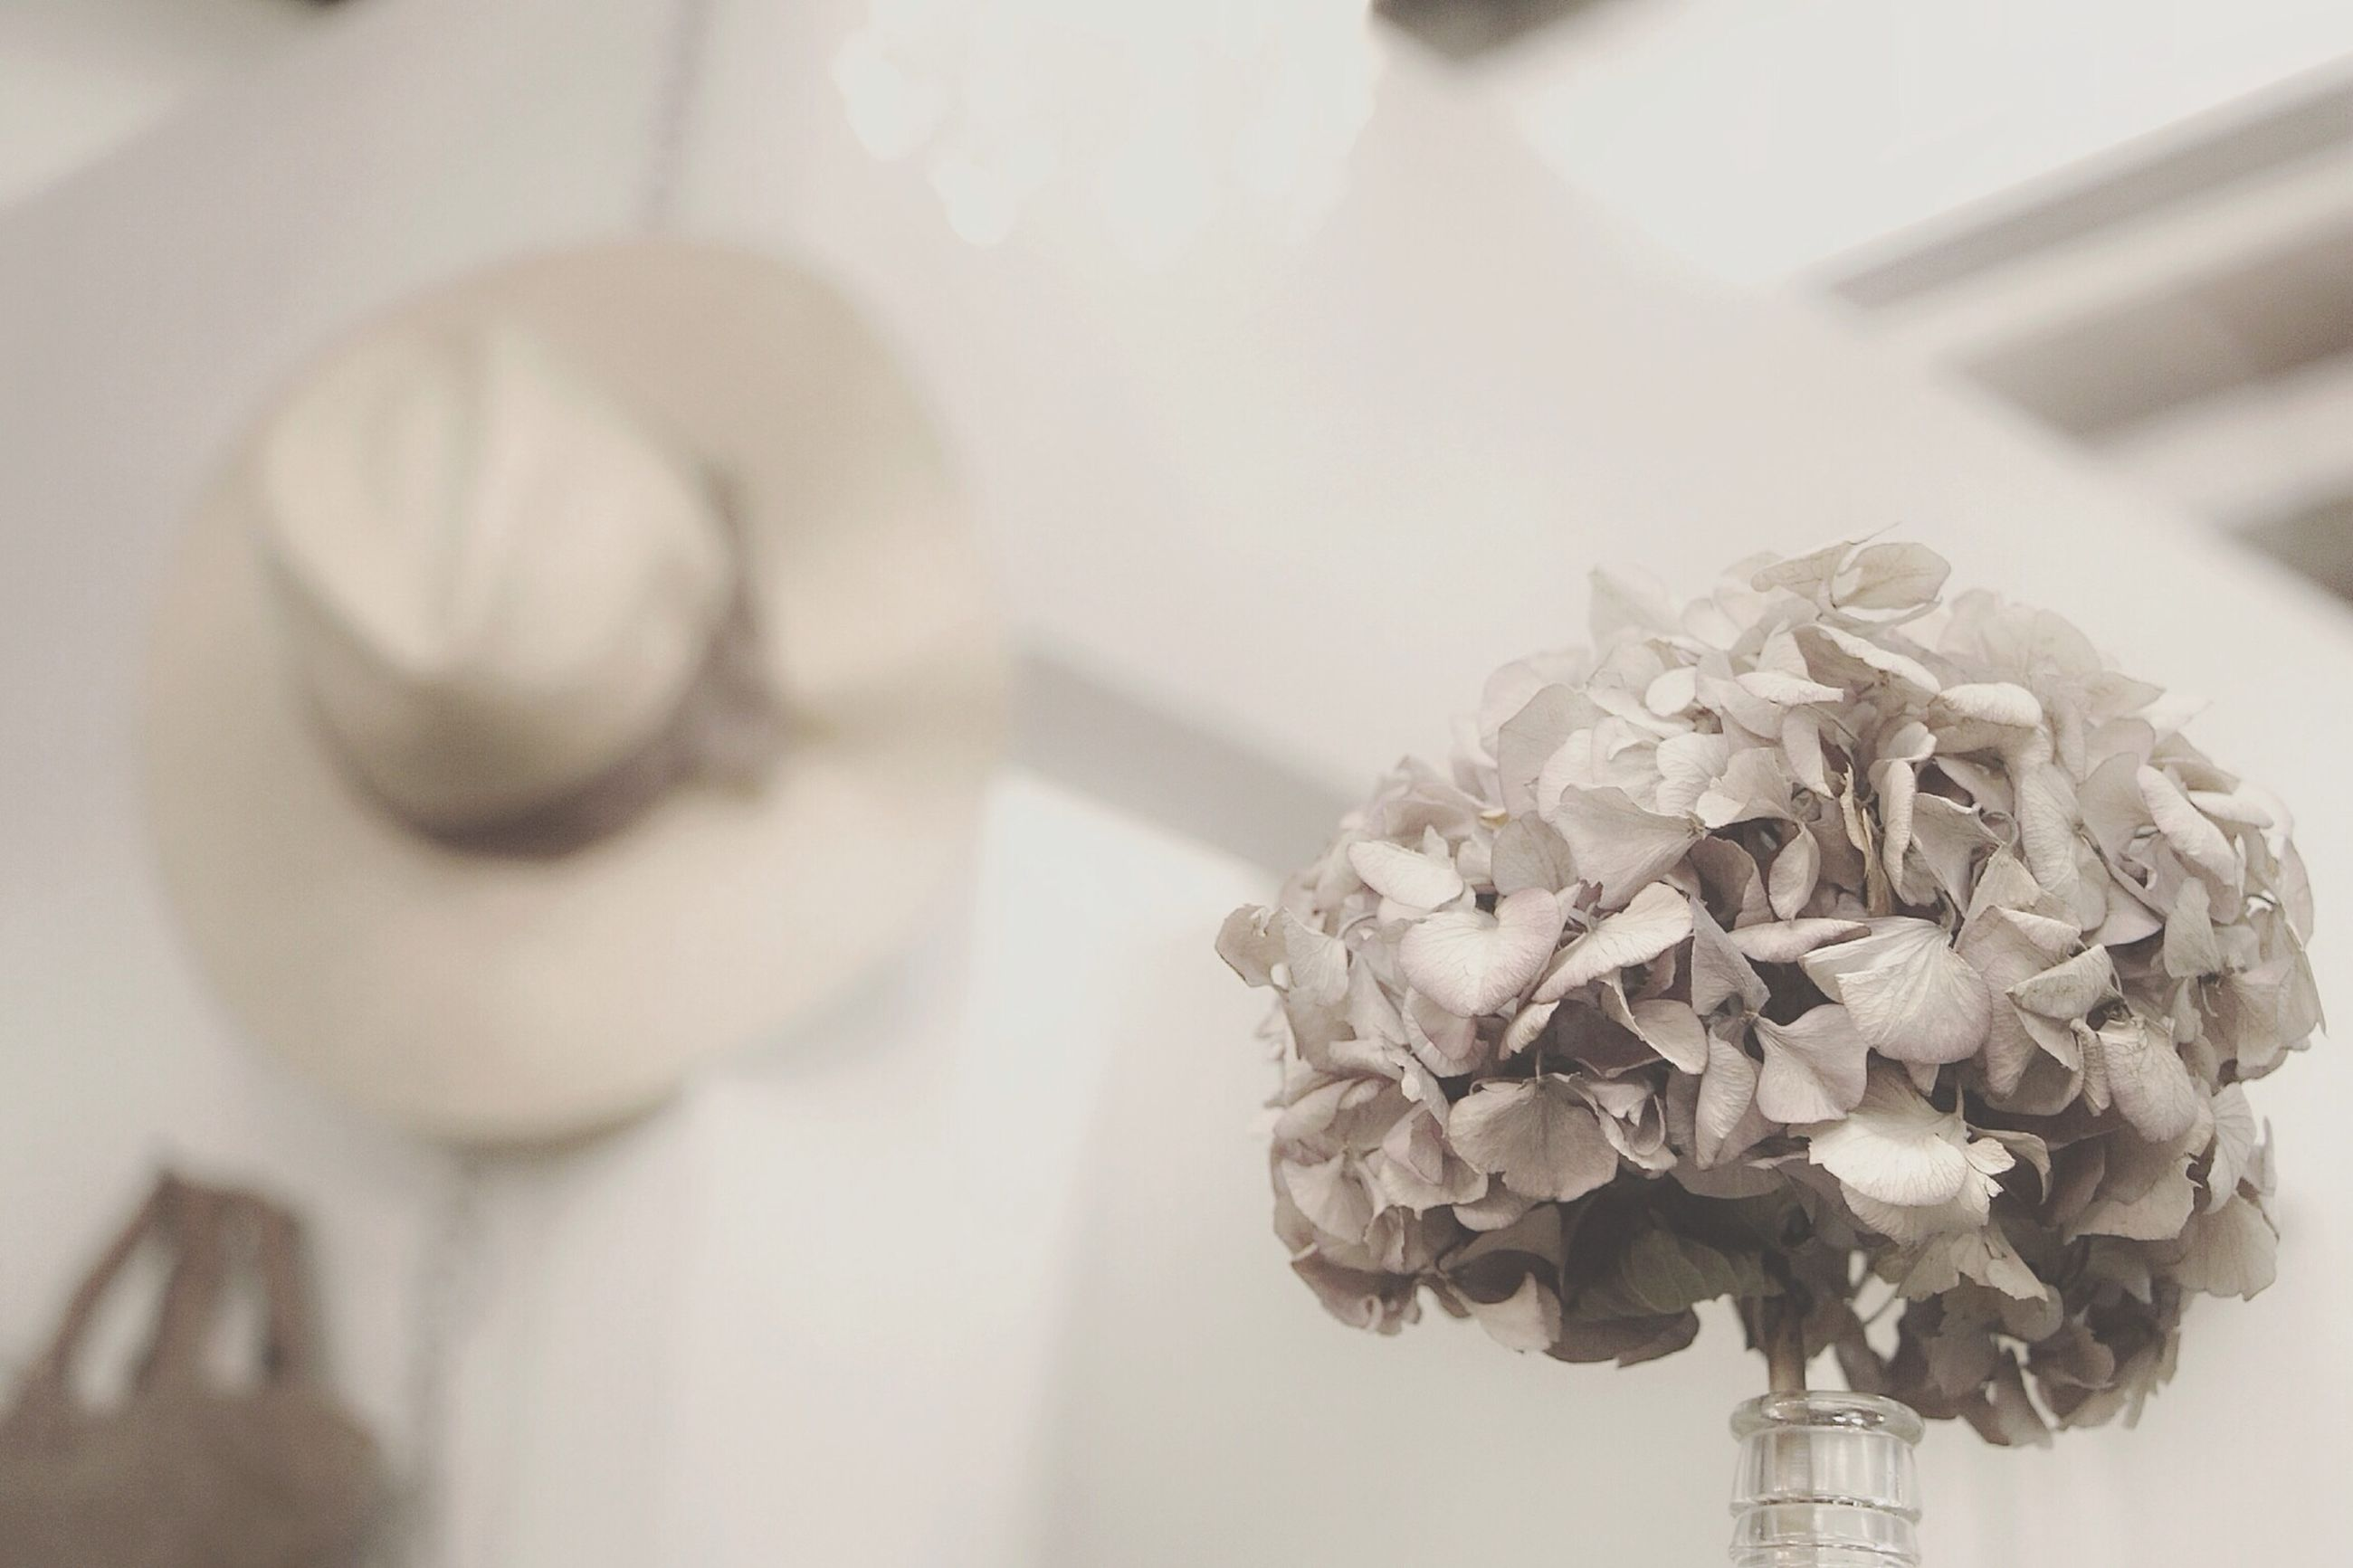 indoors, close-up, flower, focus on foreground, selective focus, still life, freshness, art and craft, no people, art, creativity, human representation, decoration, table, day, home interior, fragility, plant